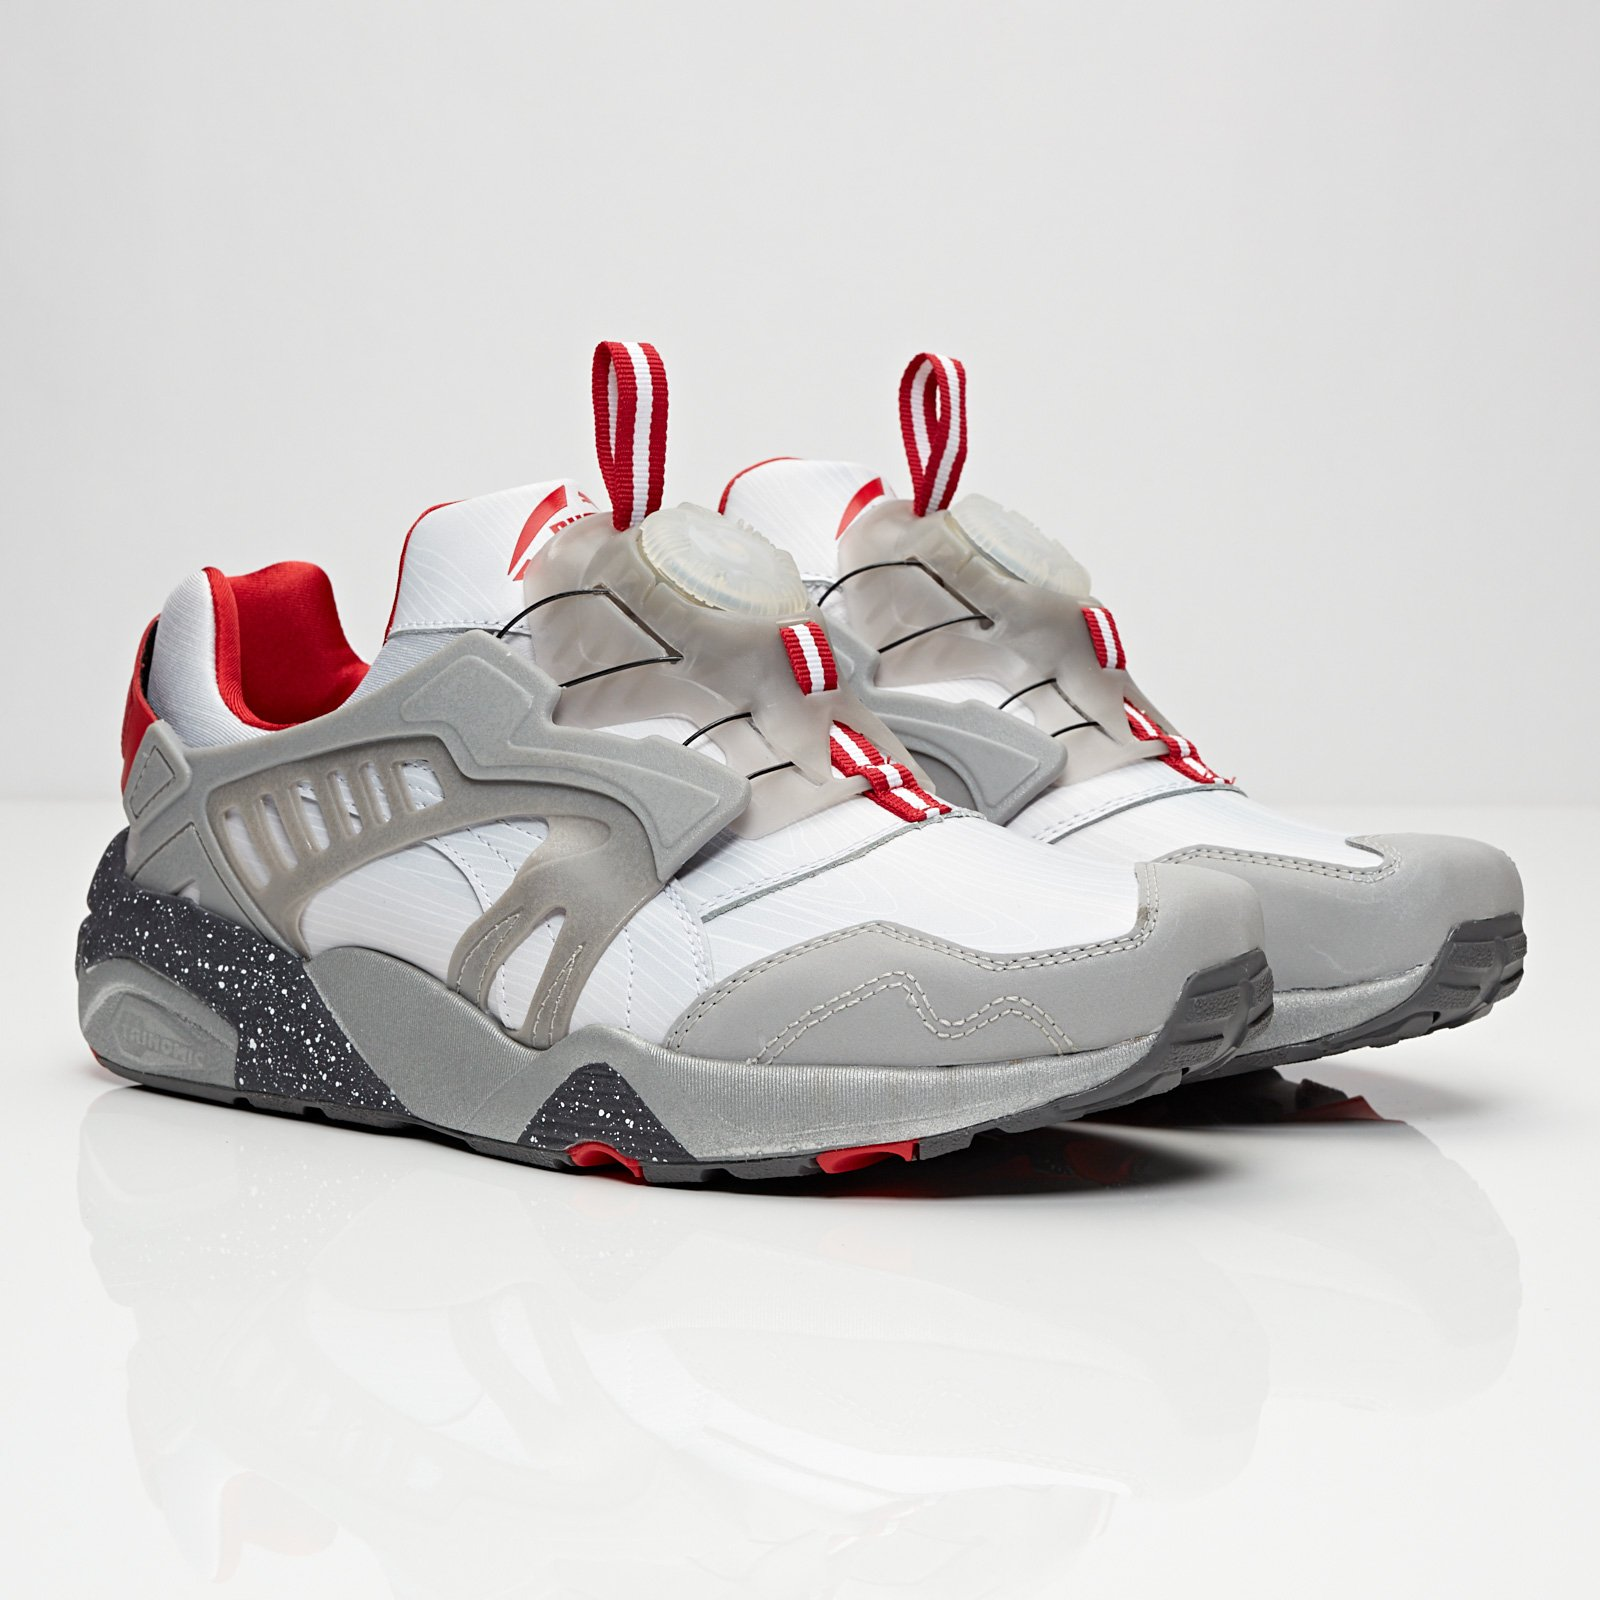 Puma Disc Blaze By Limited EDT 1 360170 01